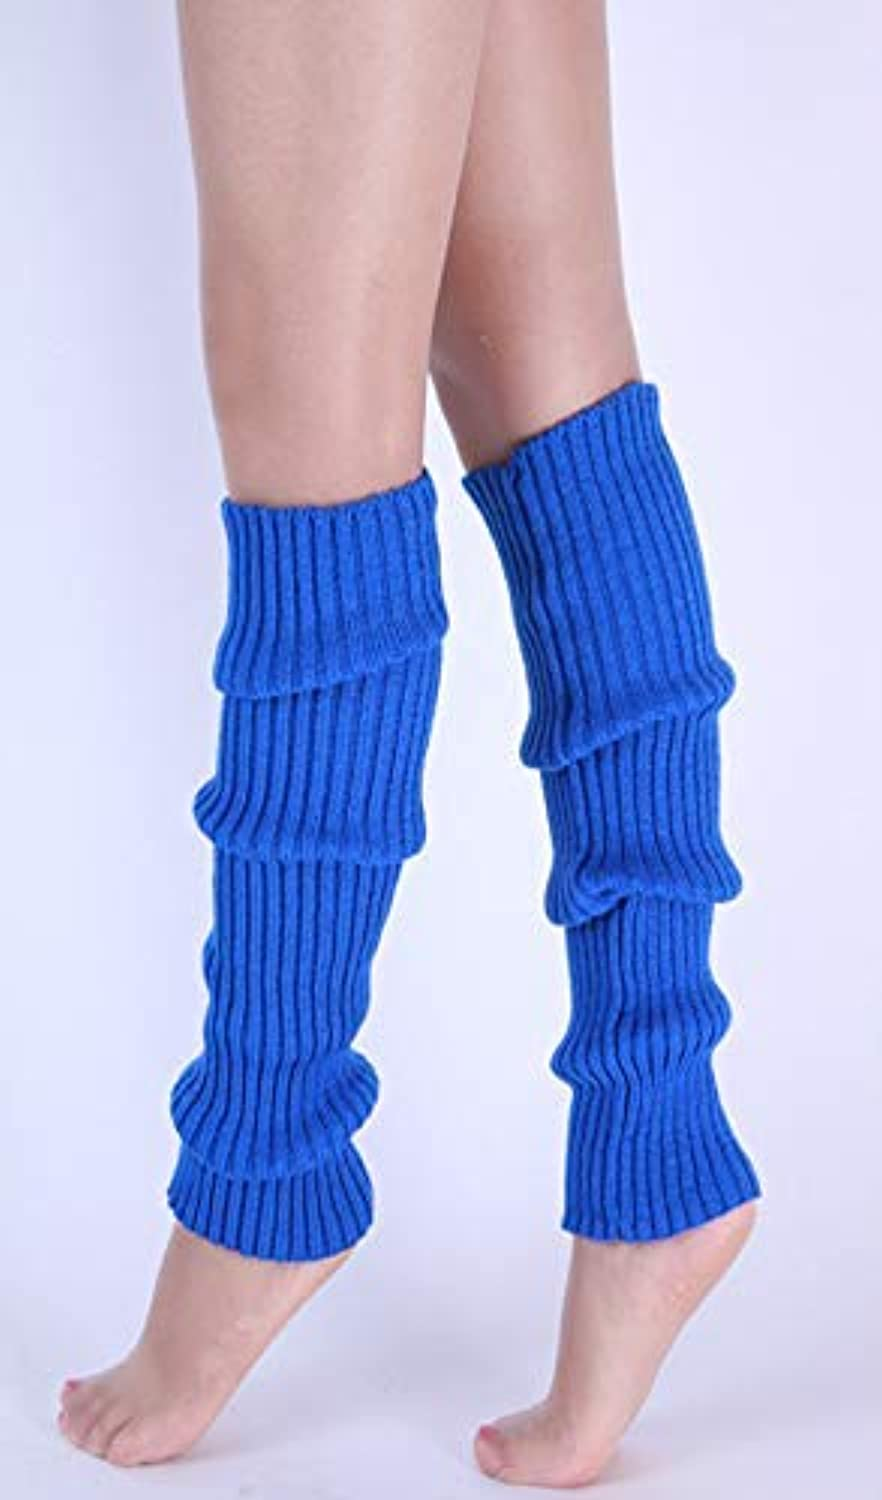 Comfortable Arm Warmer Leg Stocking Fluorescent color Wool Foot Cover Knitted Foot Cover Stacked Socks Set Boots Foot Cover (color   Sapphire)